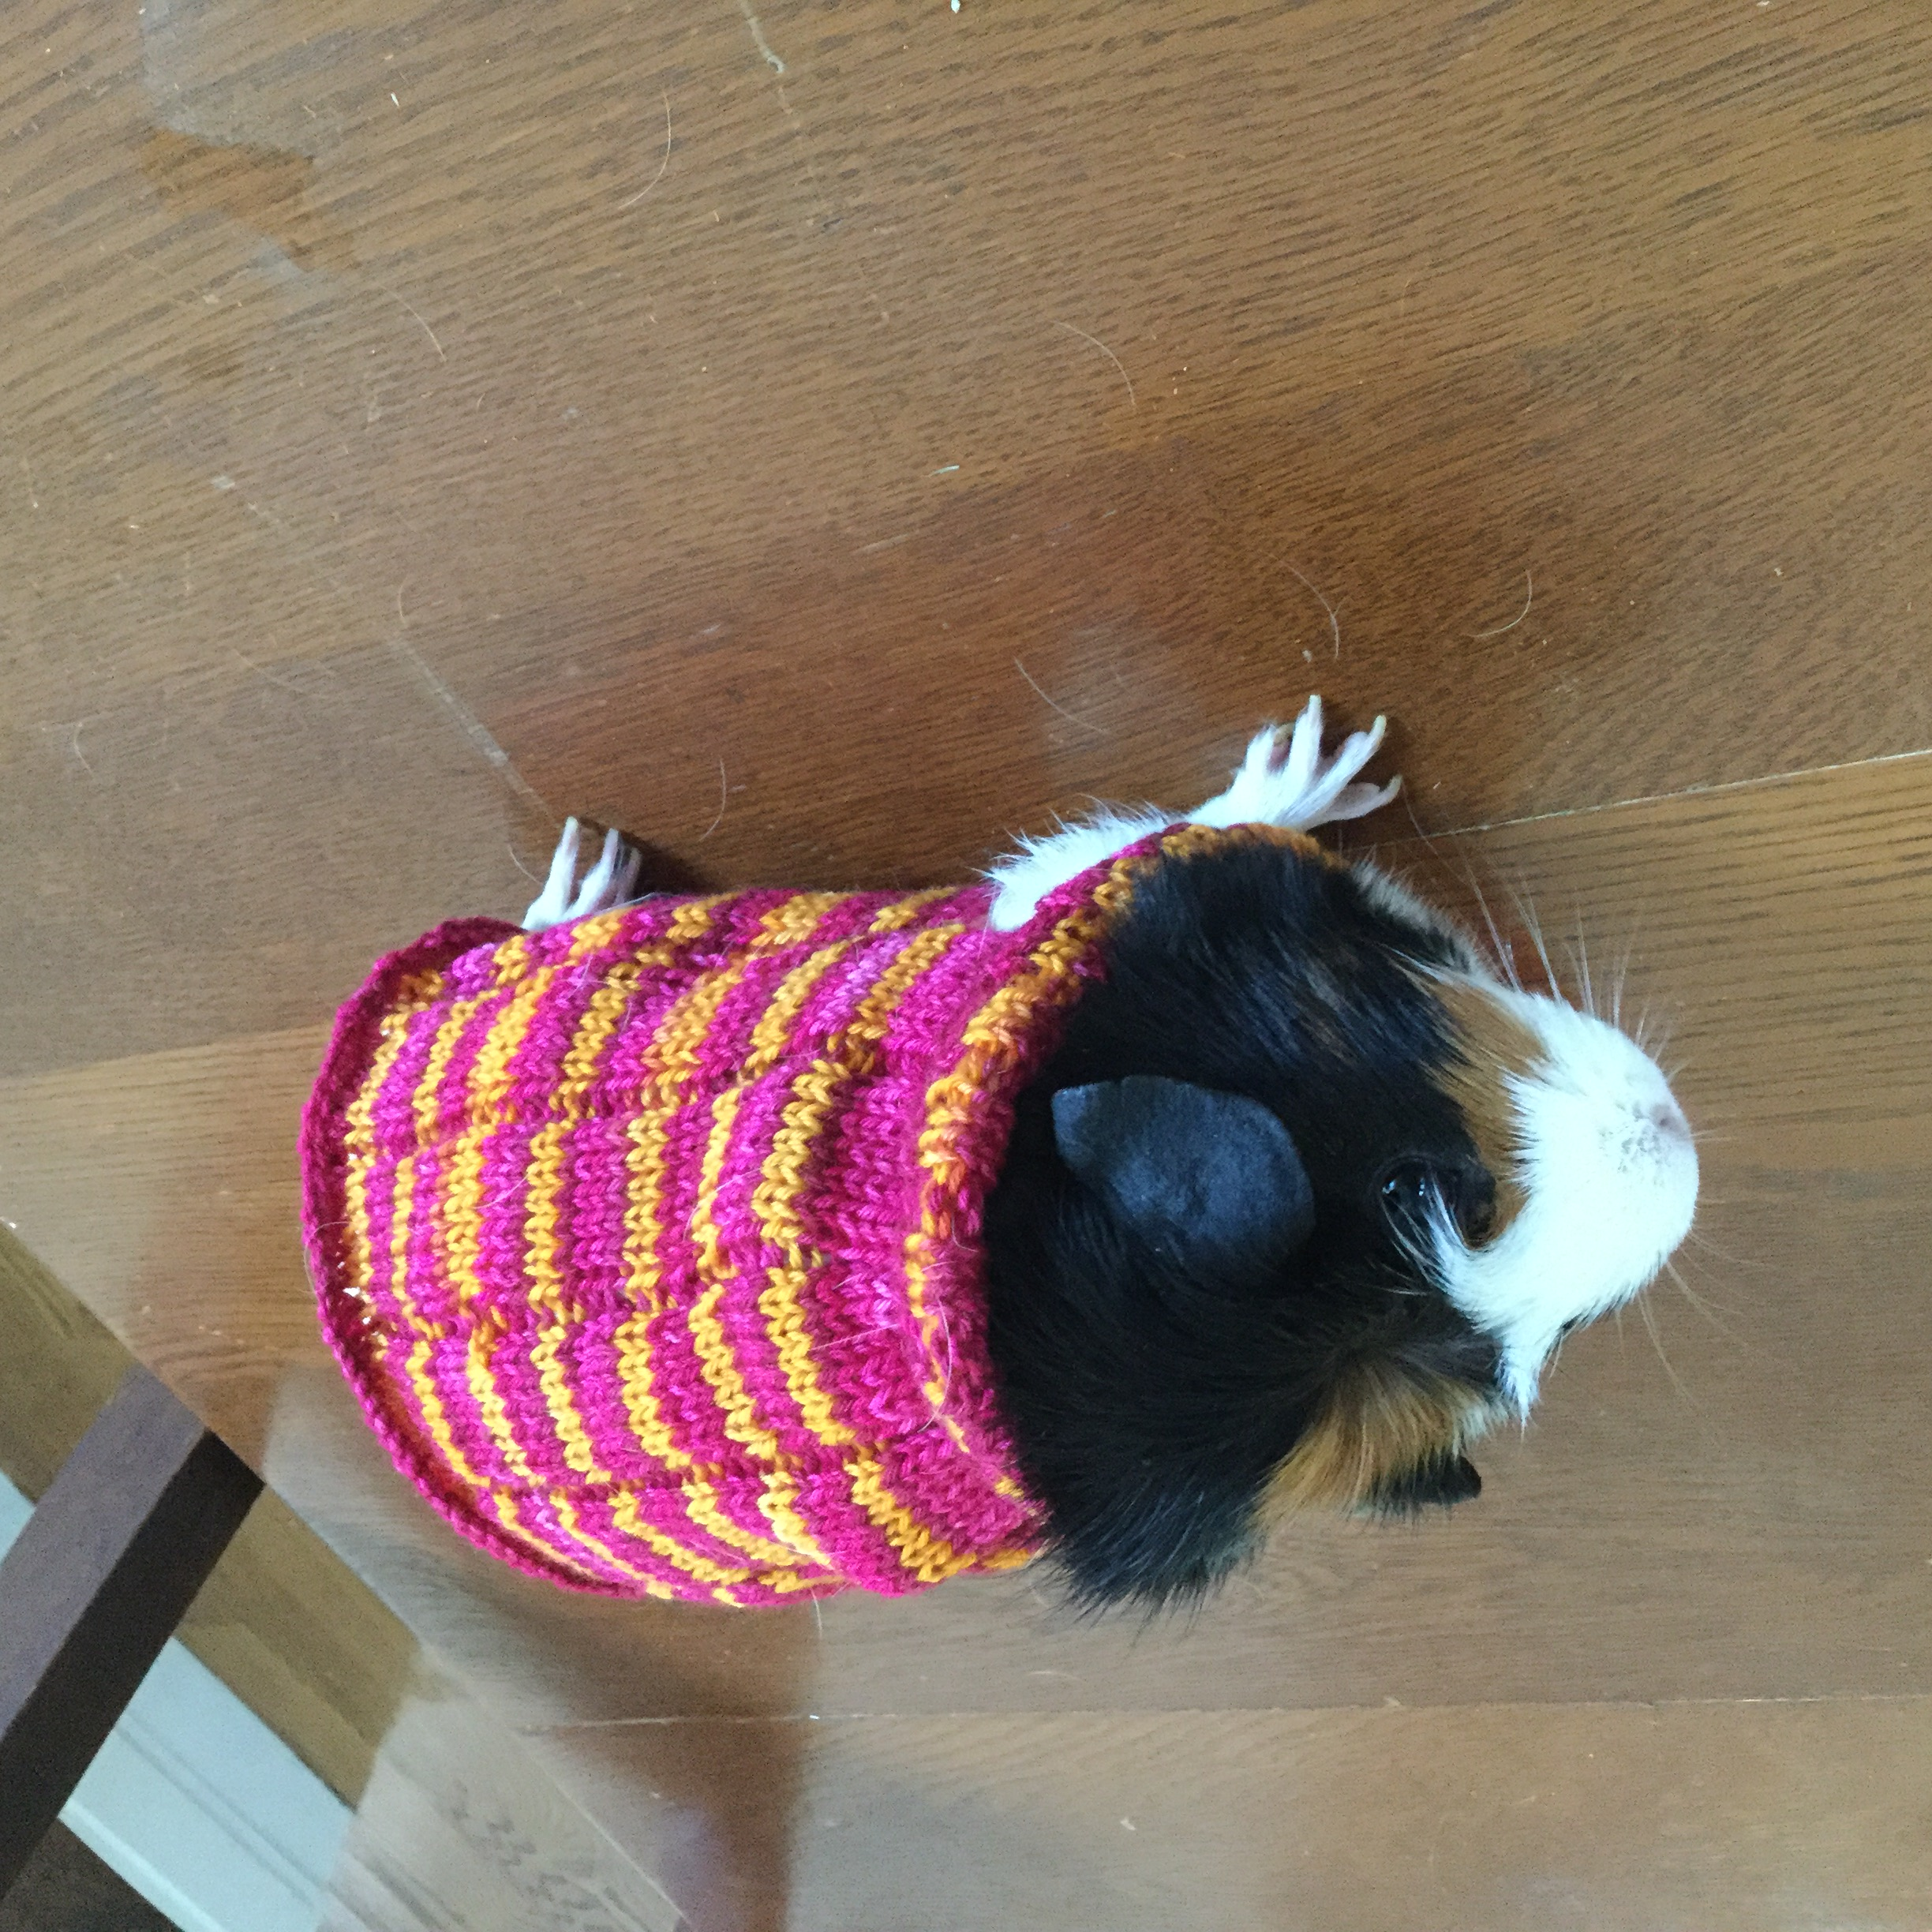 Guinea Pig Sweater Knitting Pattern : I Knit My Guinea Pig A Sweater Bored Panda